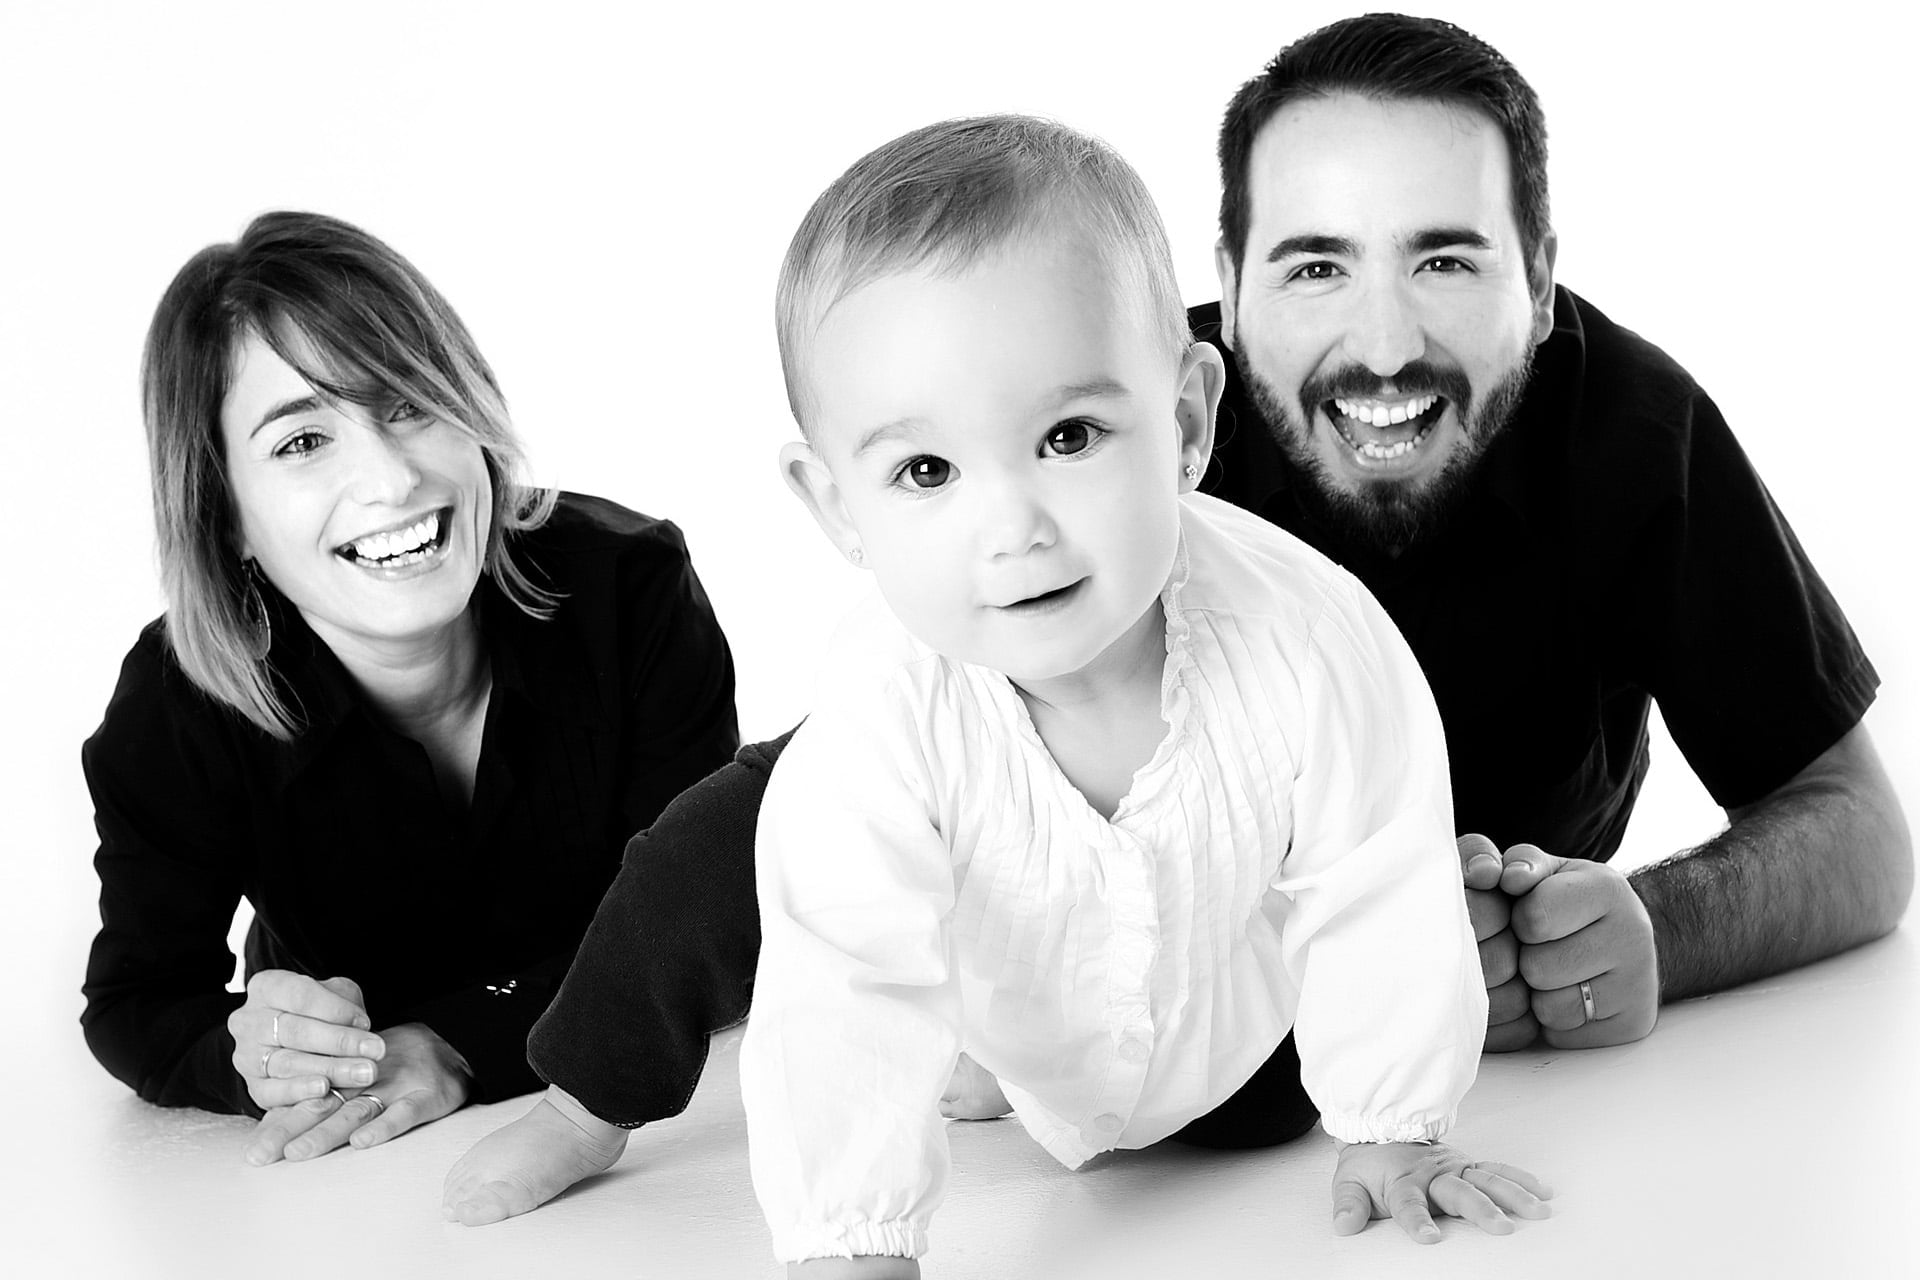 black and white image of family laying on the floor smiling with the parents behind the infant